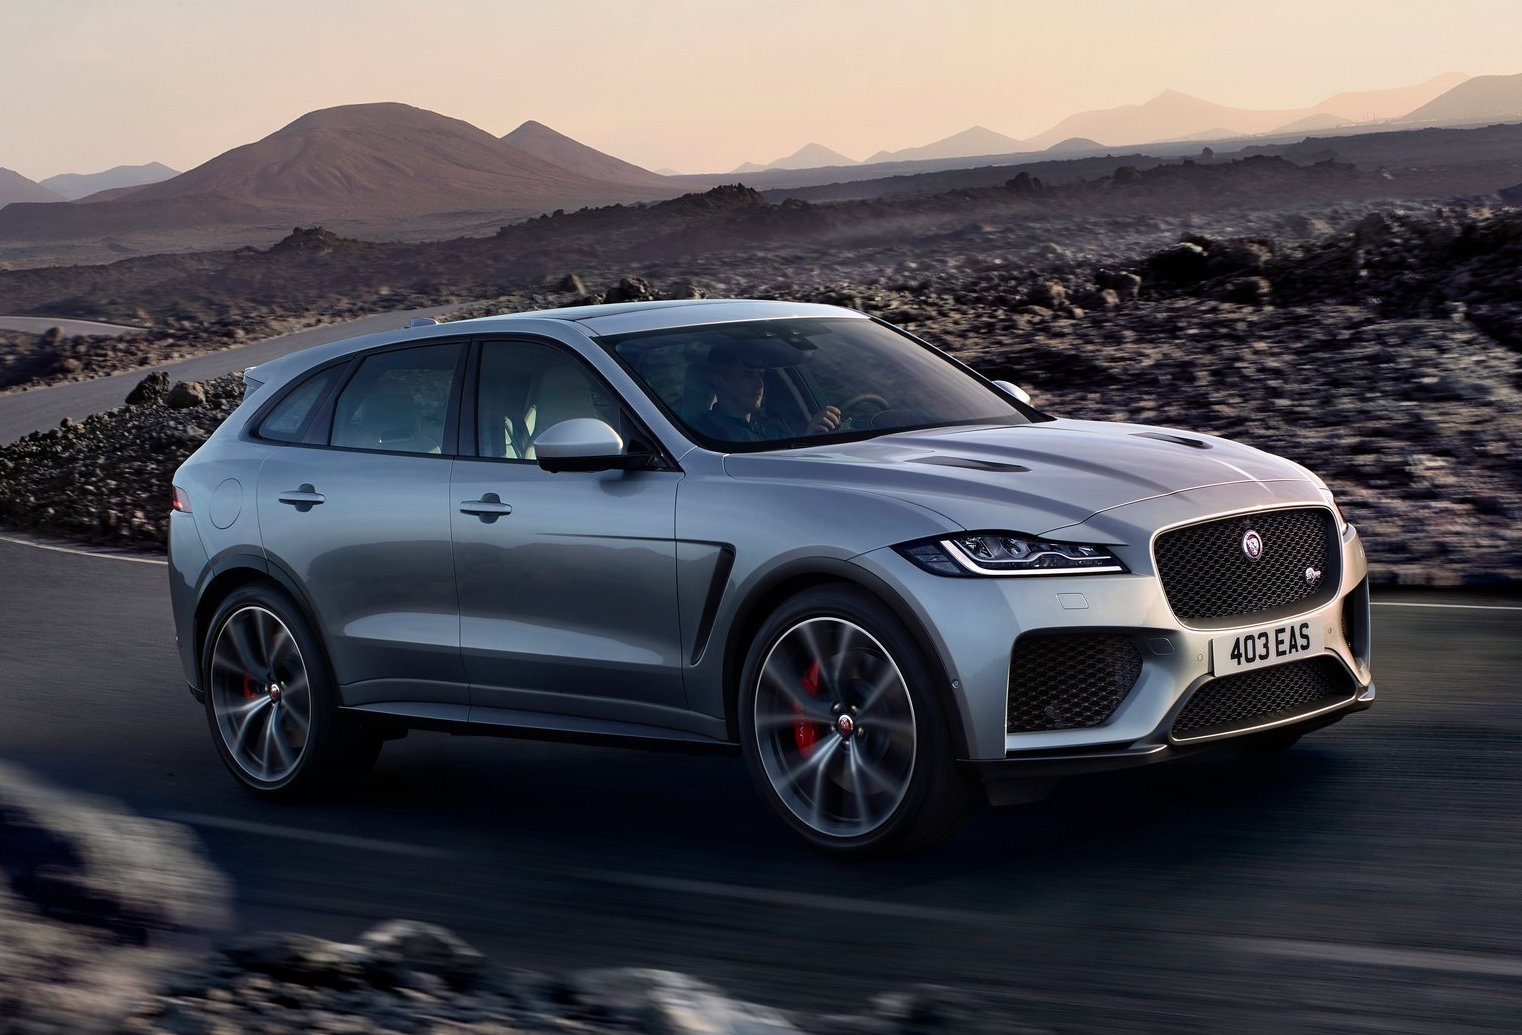 jaguar f pace svr revealed with potent supercharged v8 performancedrive. Black Bedroom Furniture Sets. Home Design Ideas